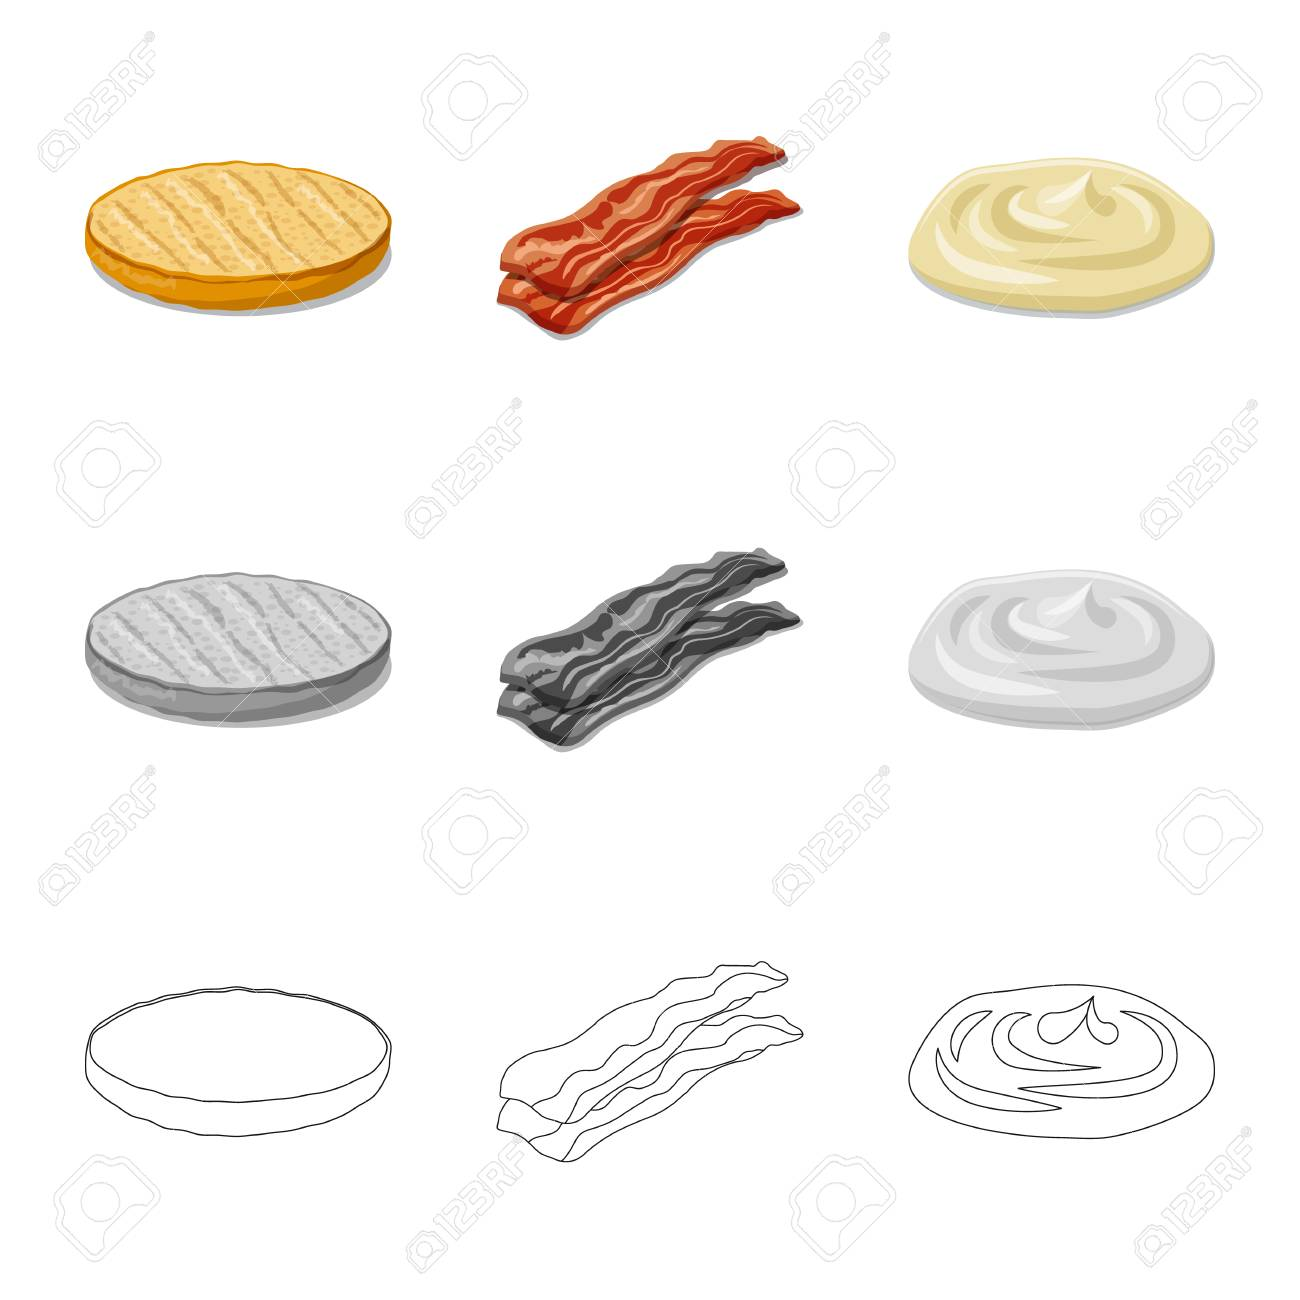 Isolated object of burger and sandwich symbol. Set of burger and slice stock vector illustration. - 113339174